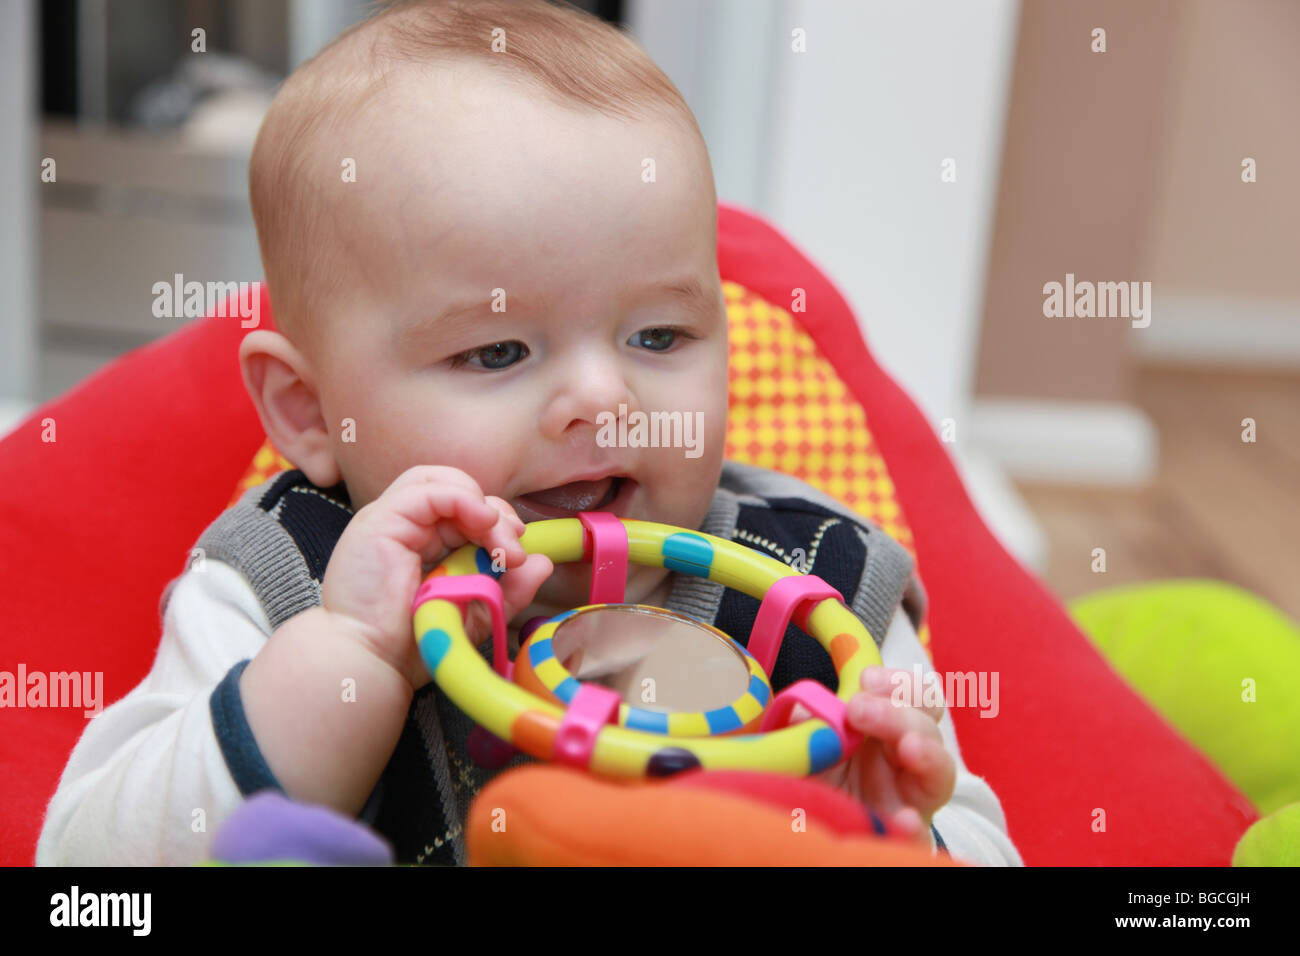 3 4 Month Old Baby Boy Playing With Toys In Cradle Chair